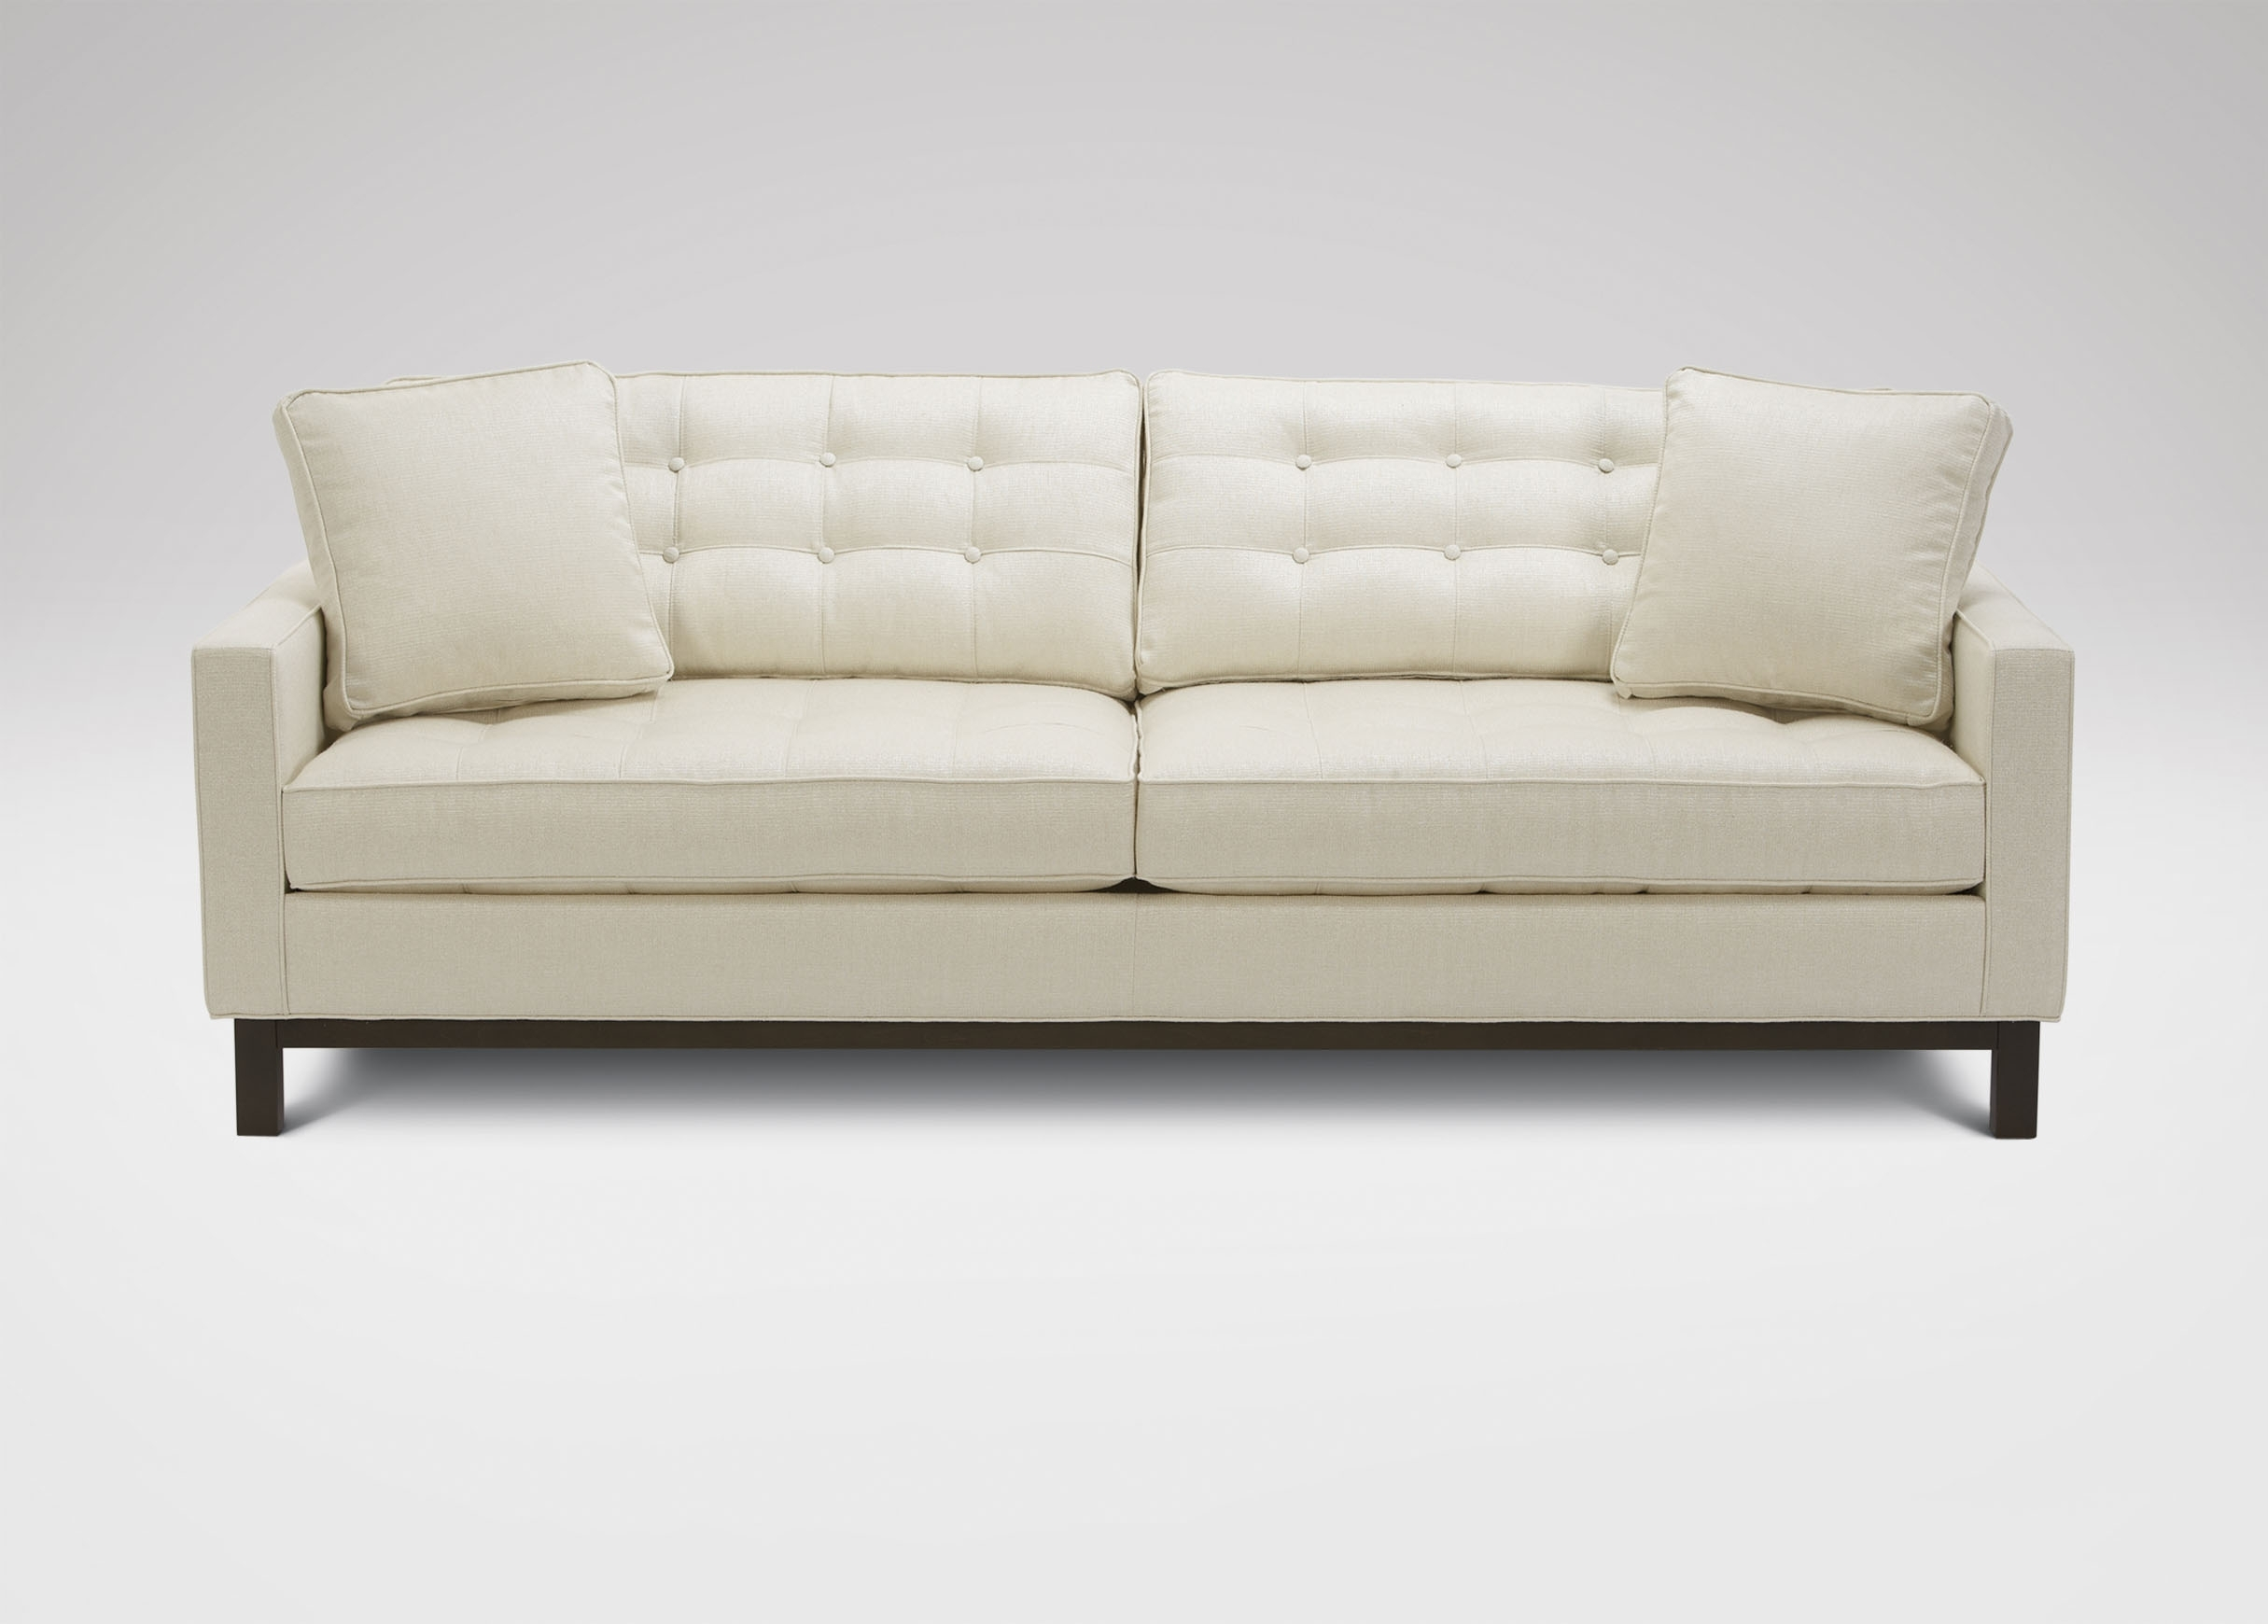 Ethan Allen Sectional Sofas | Aifaresidency inside Sectional Sofas at Ethan Allen (Image 3 of 10)